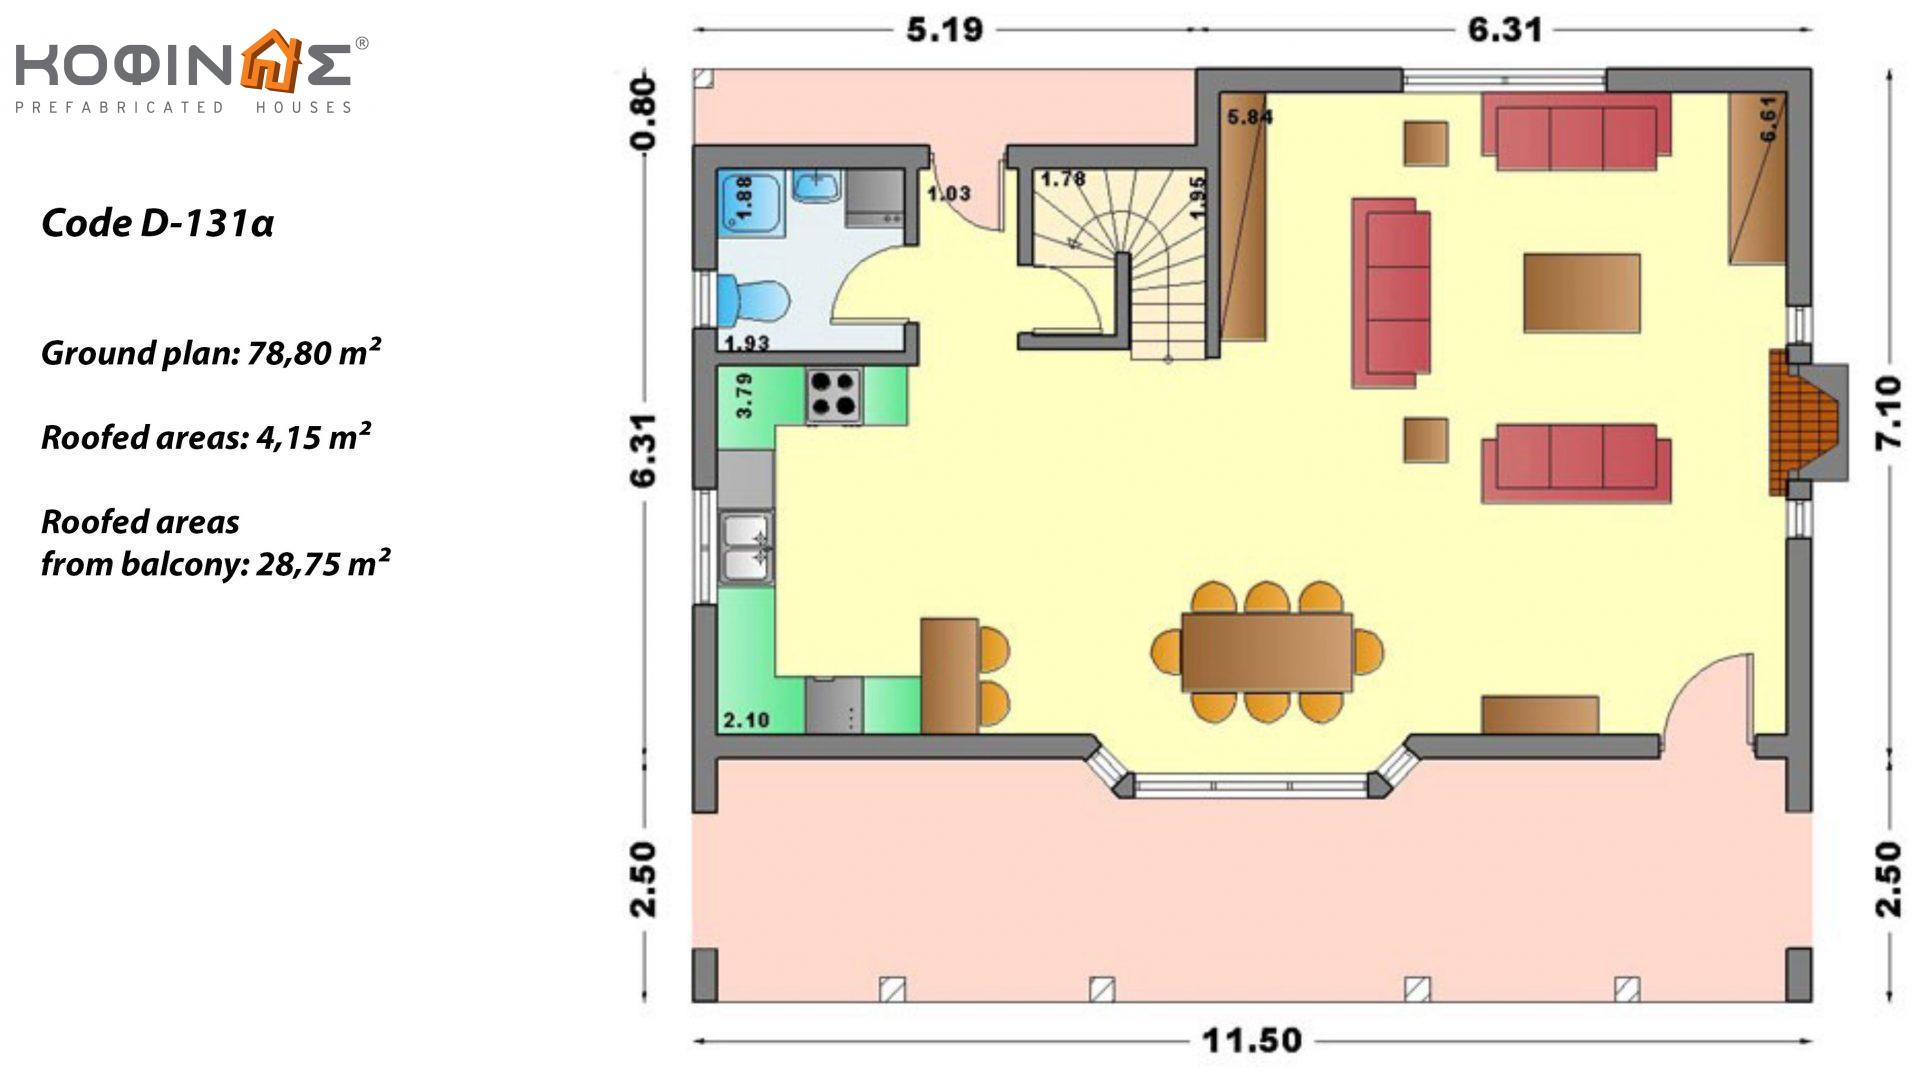 2-story house D-131a, total surface of 131,50 m²,roofed areas 76.70 m²,balconies 36.88 m²